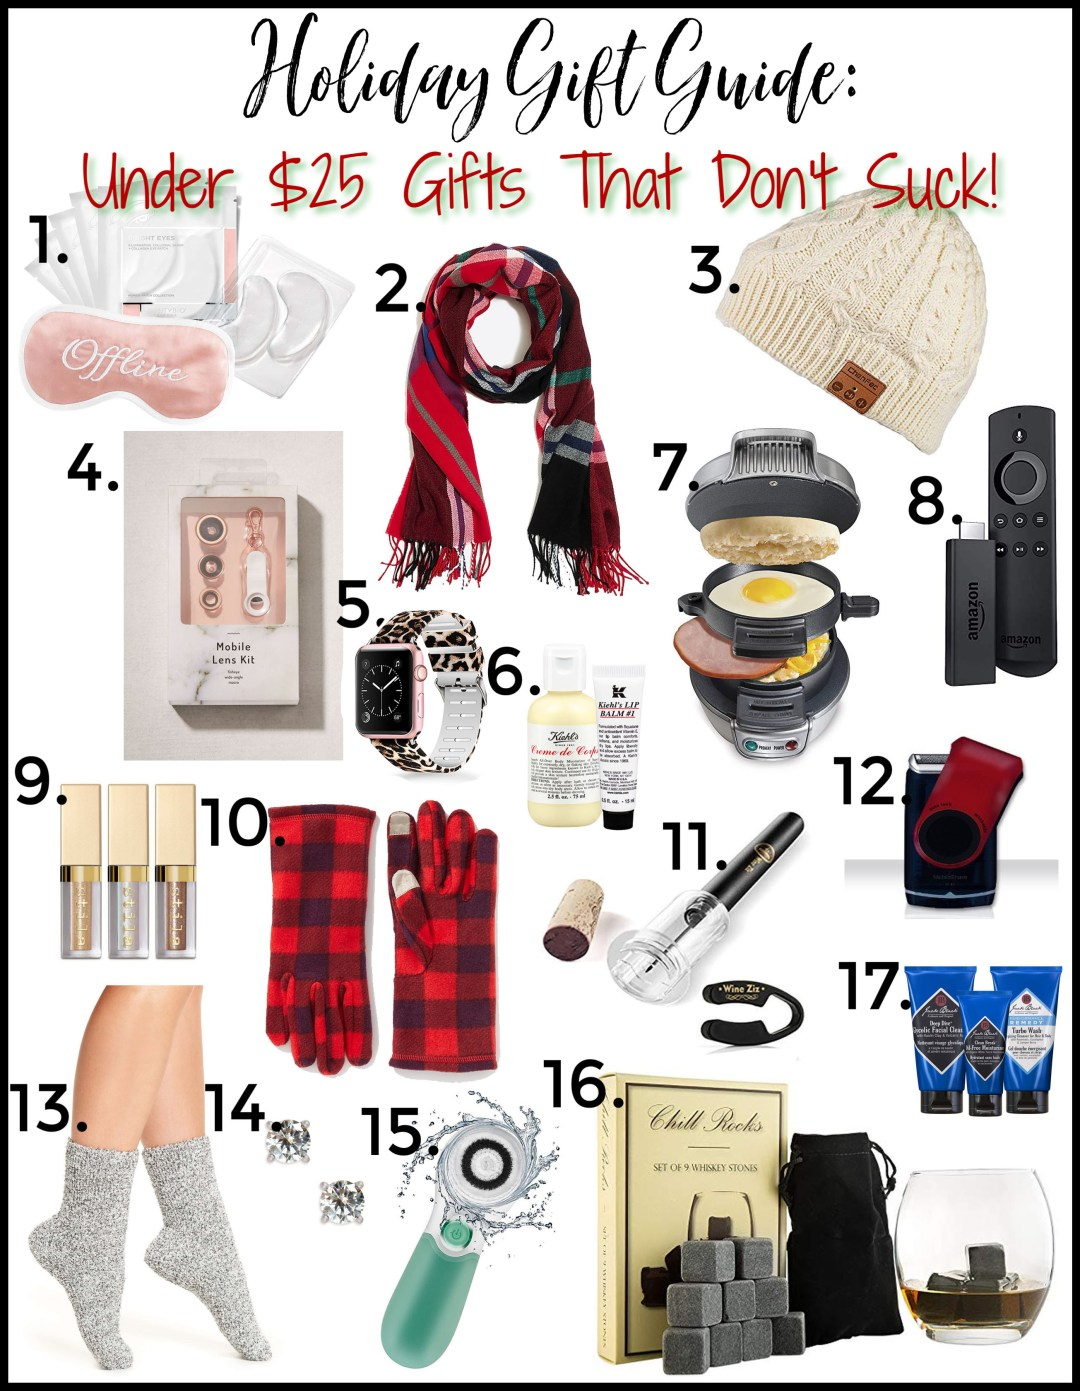 Holiday Gift Guide, Under $25 gifts that don't suck